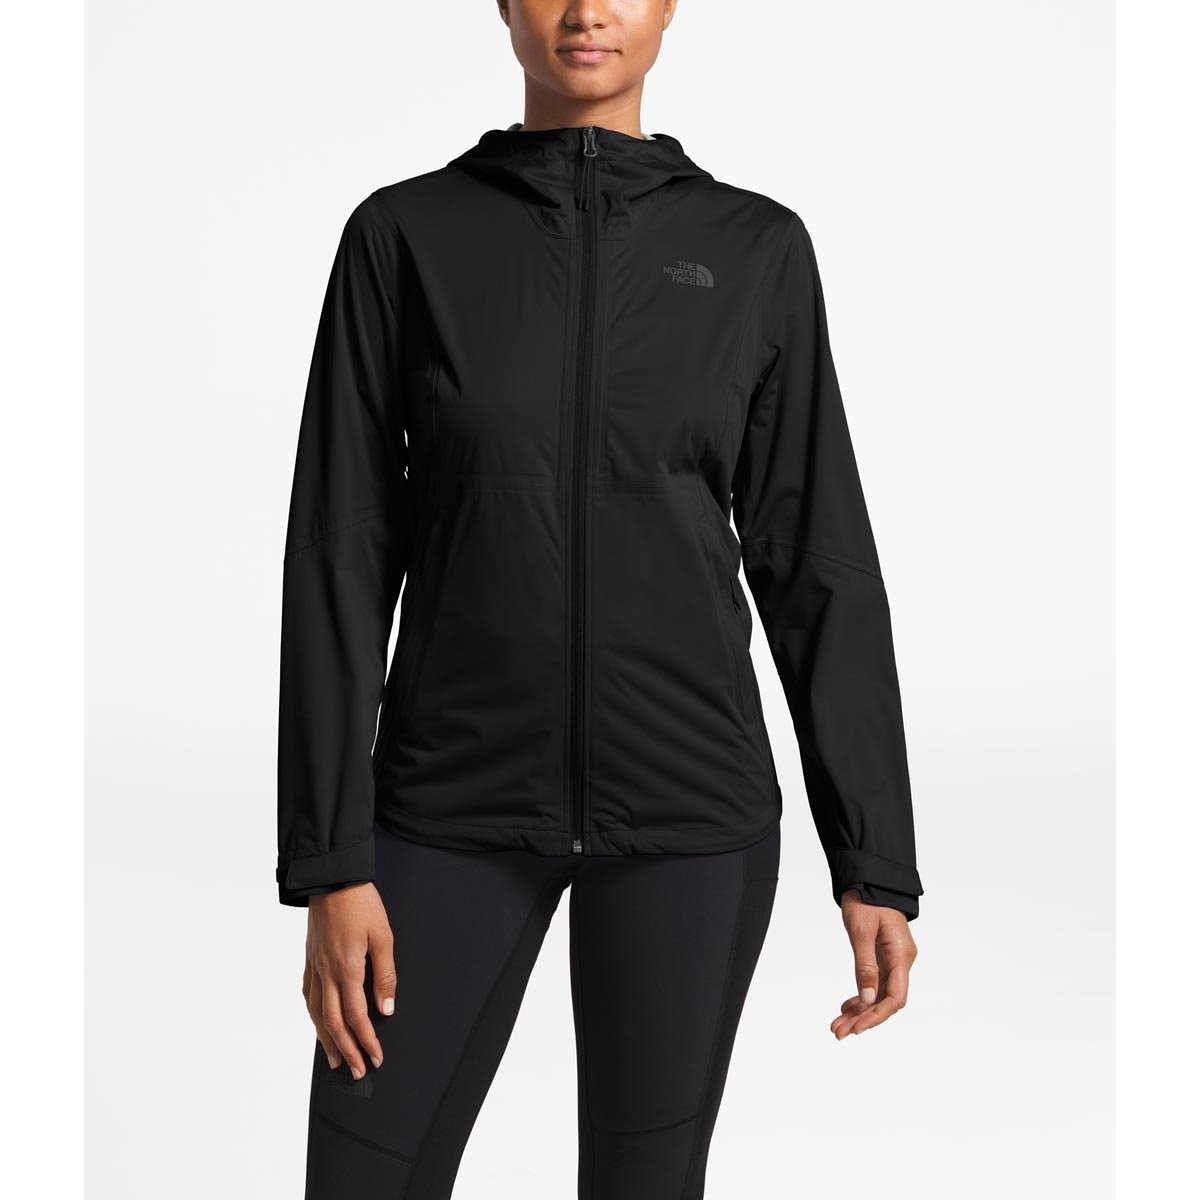 Elástica Tnf The Face Negro Mujer M Para Allproof Chaqueta North qaUIXwUF